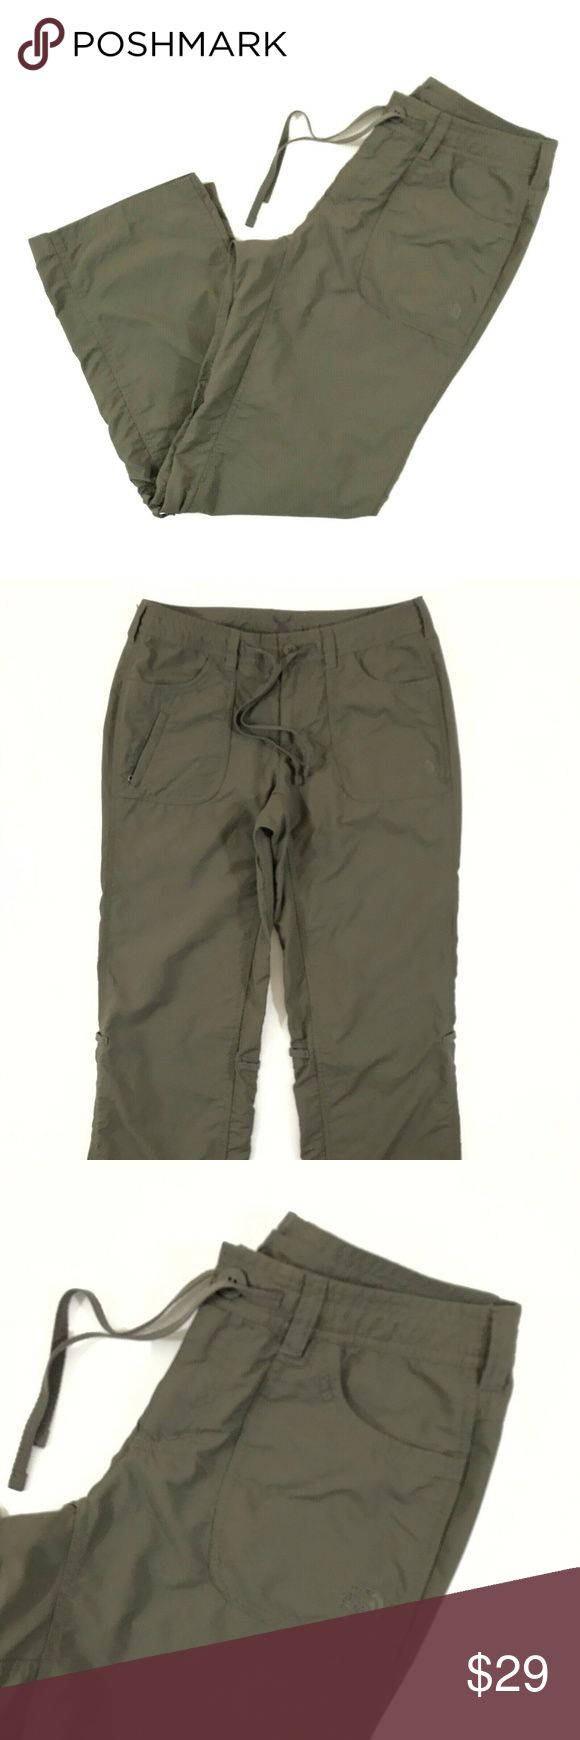 The North Face Hiking Pants Women's 6 Short Green The North Face Nylon Hiking …